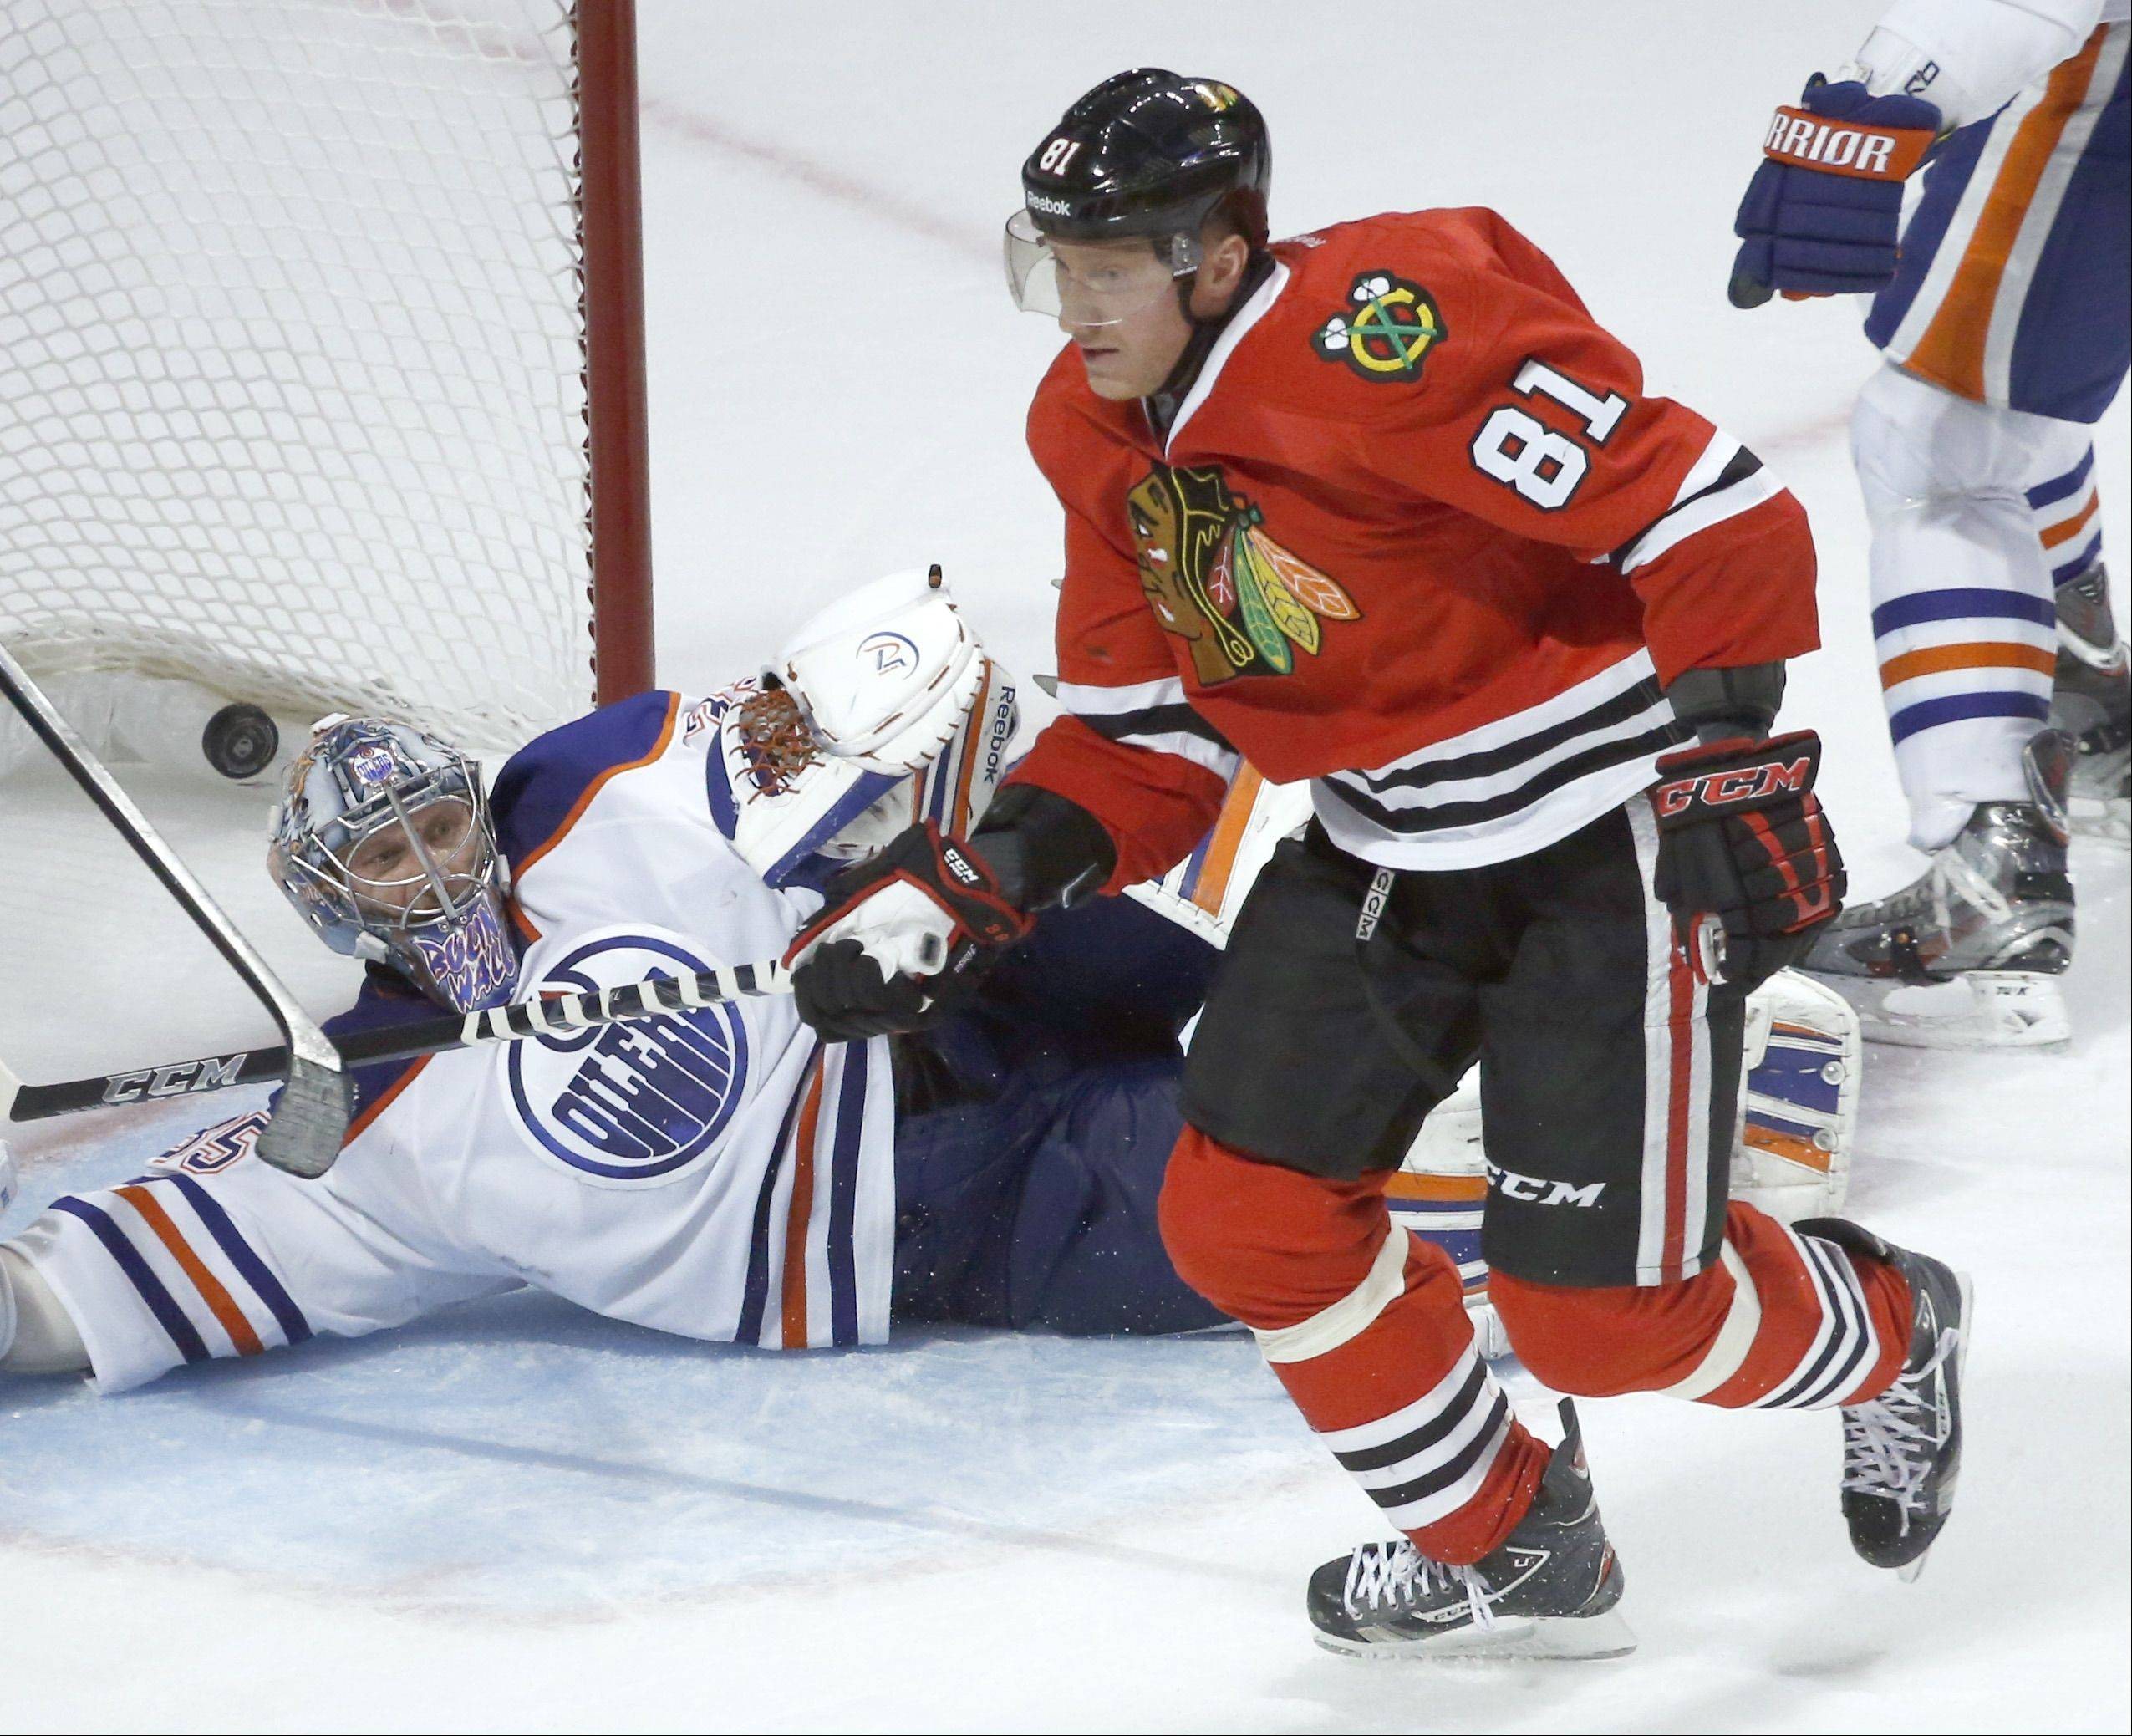 Chicago Blackhawks right wing Marian Hossa begins to celebrate after scoring the winning goal past Edmonton Oilers goalie Nikolai Khabibulin during the overtime period.